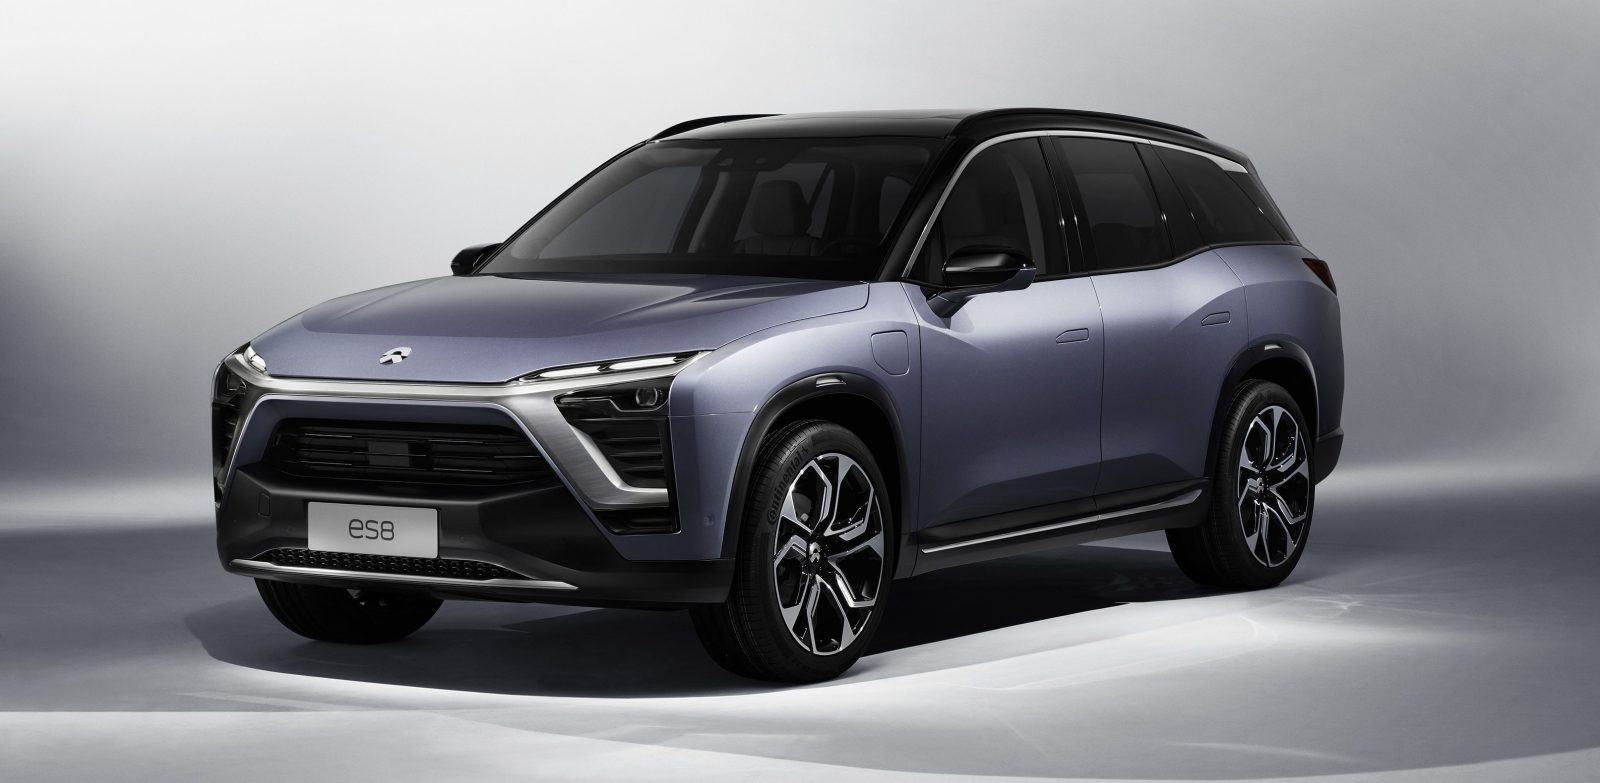 EV startup NIO goes public with $1.8 billion IPO while Tesla wants to go private